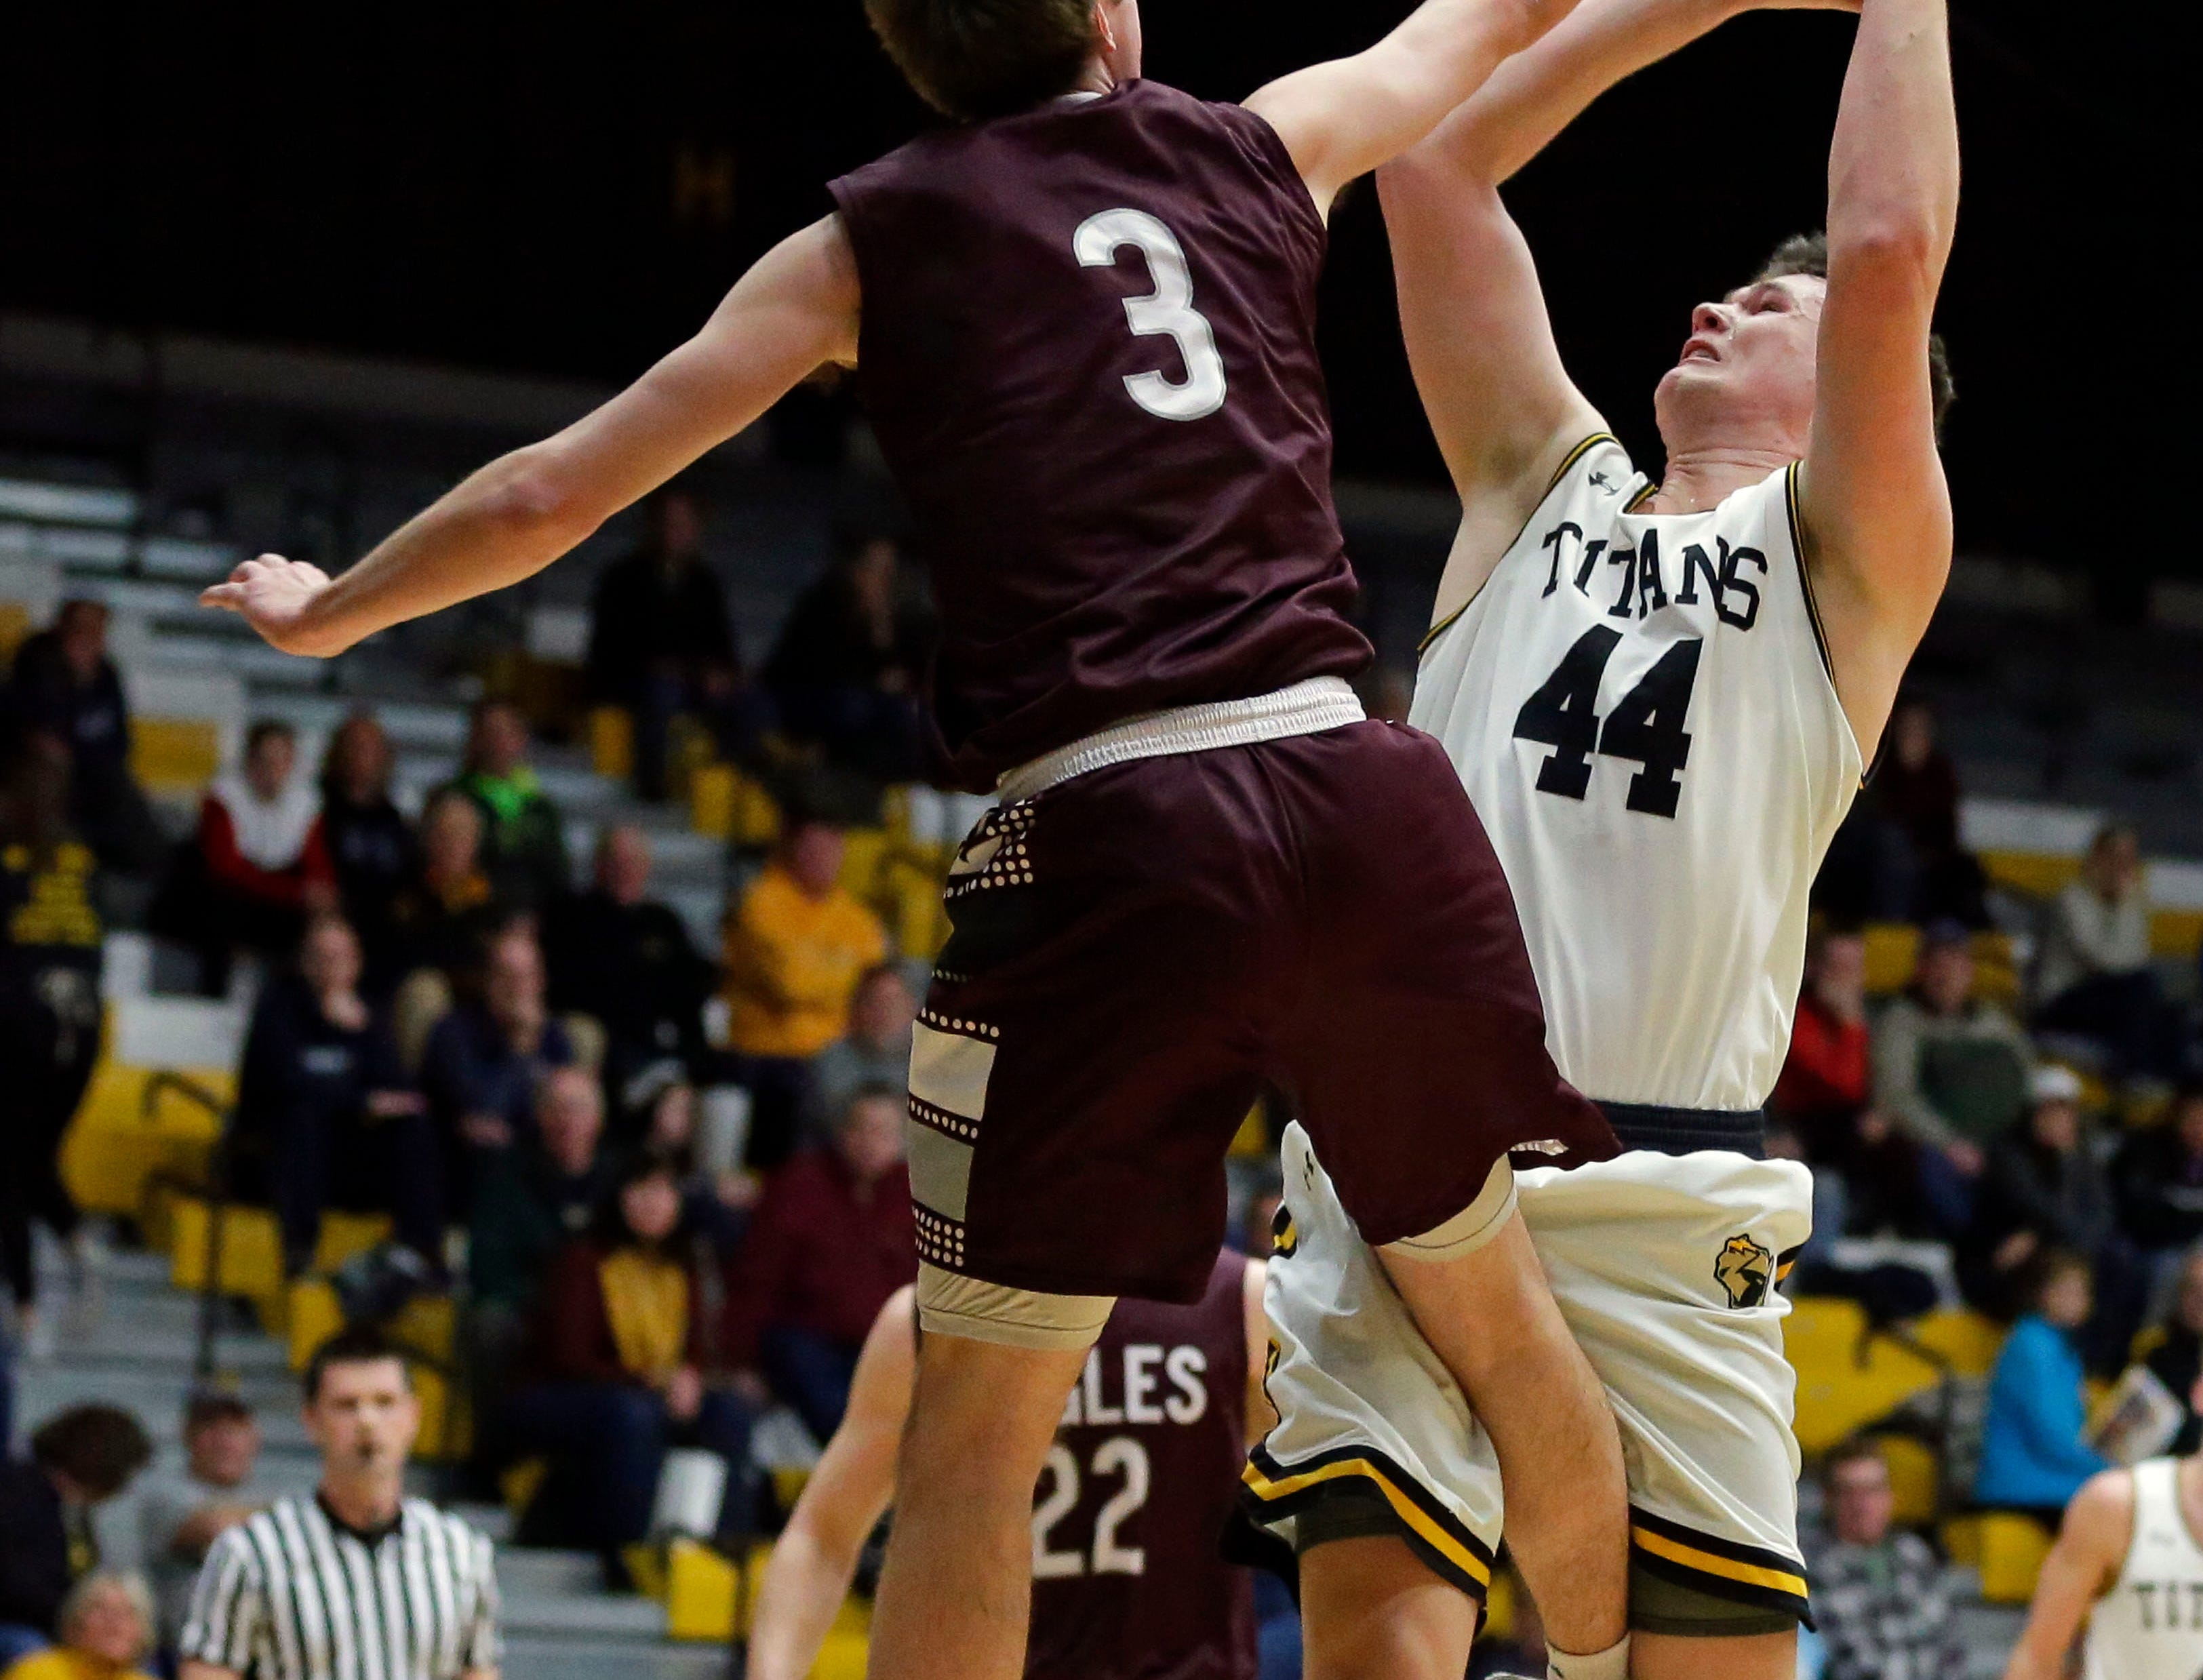 Sam Skoyen of UW-La Crosse defends against Jack Flynn of UW-Oshkosh in Wisconsin Intercollegiate Athletic Conference basketball Saturday, January 19, 2019, at Kolf Sports Center in Oshkosh, Wis. 